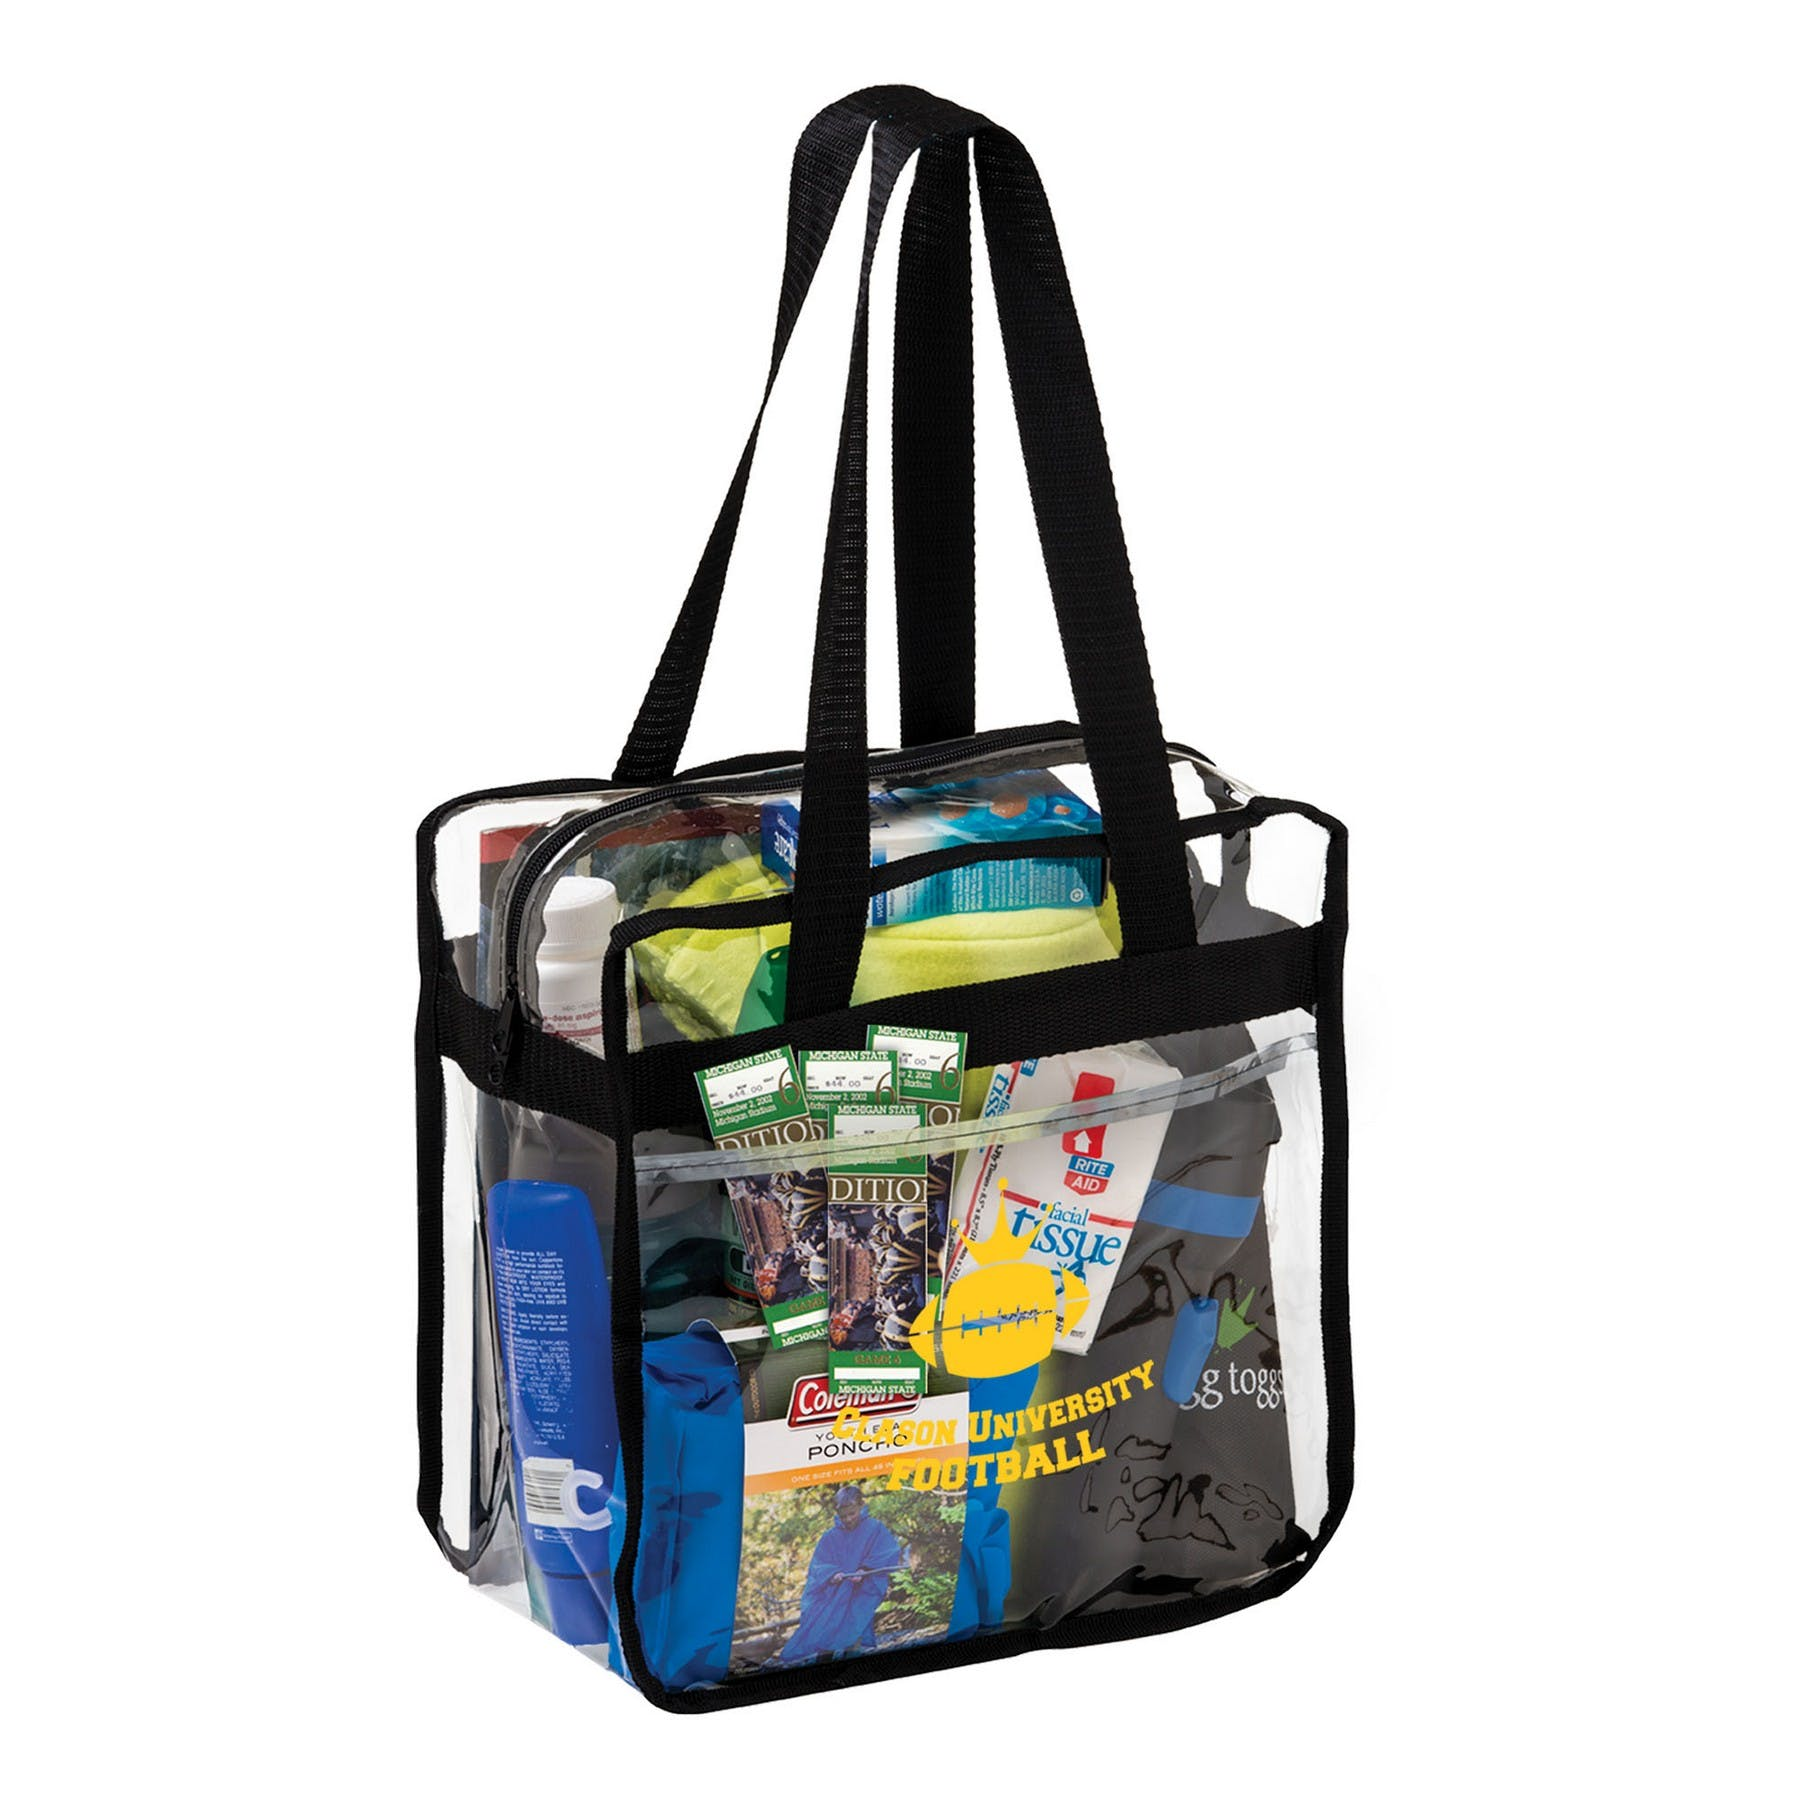 Clear Zipper Tote Bag Item Pcmhr Jmvae Bag Sold By